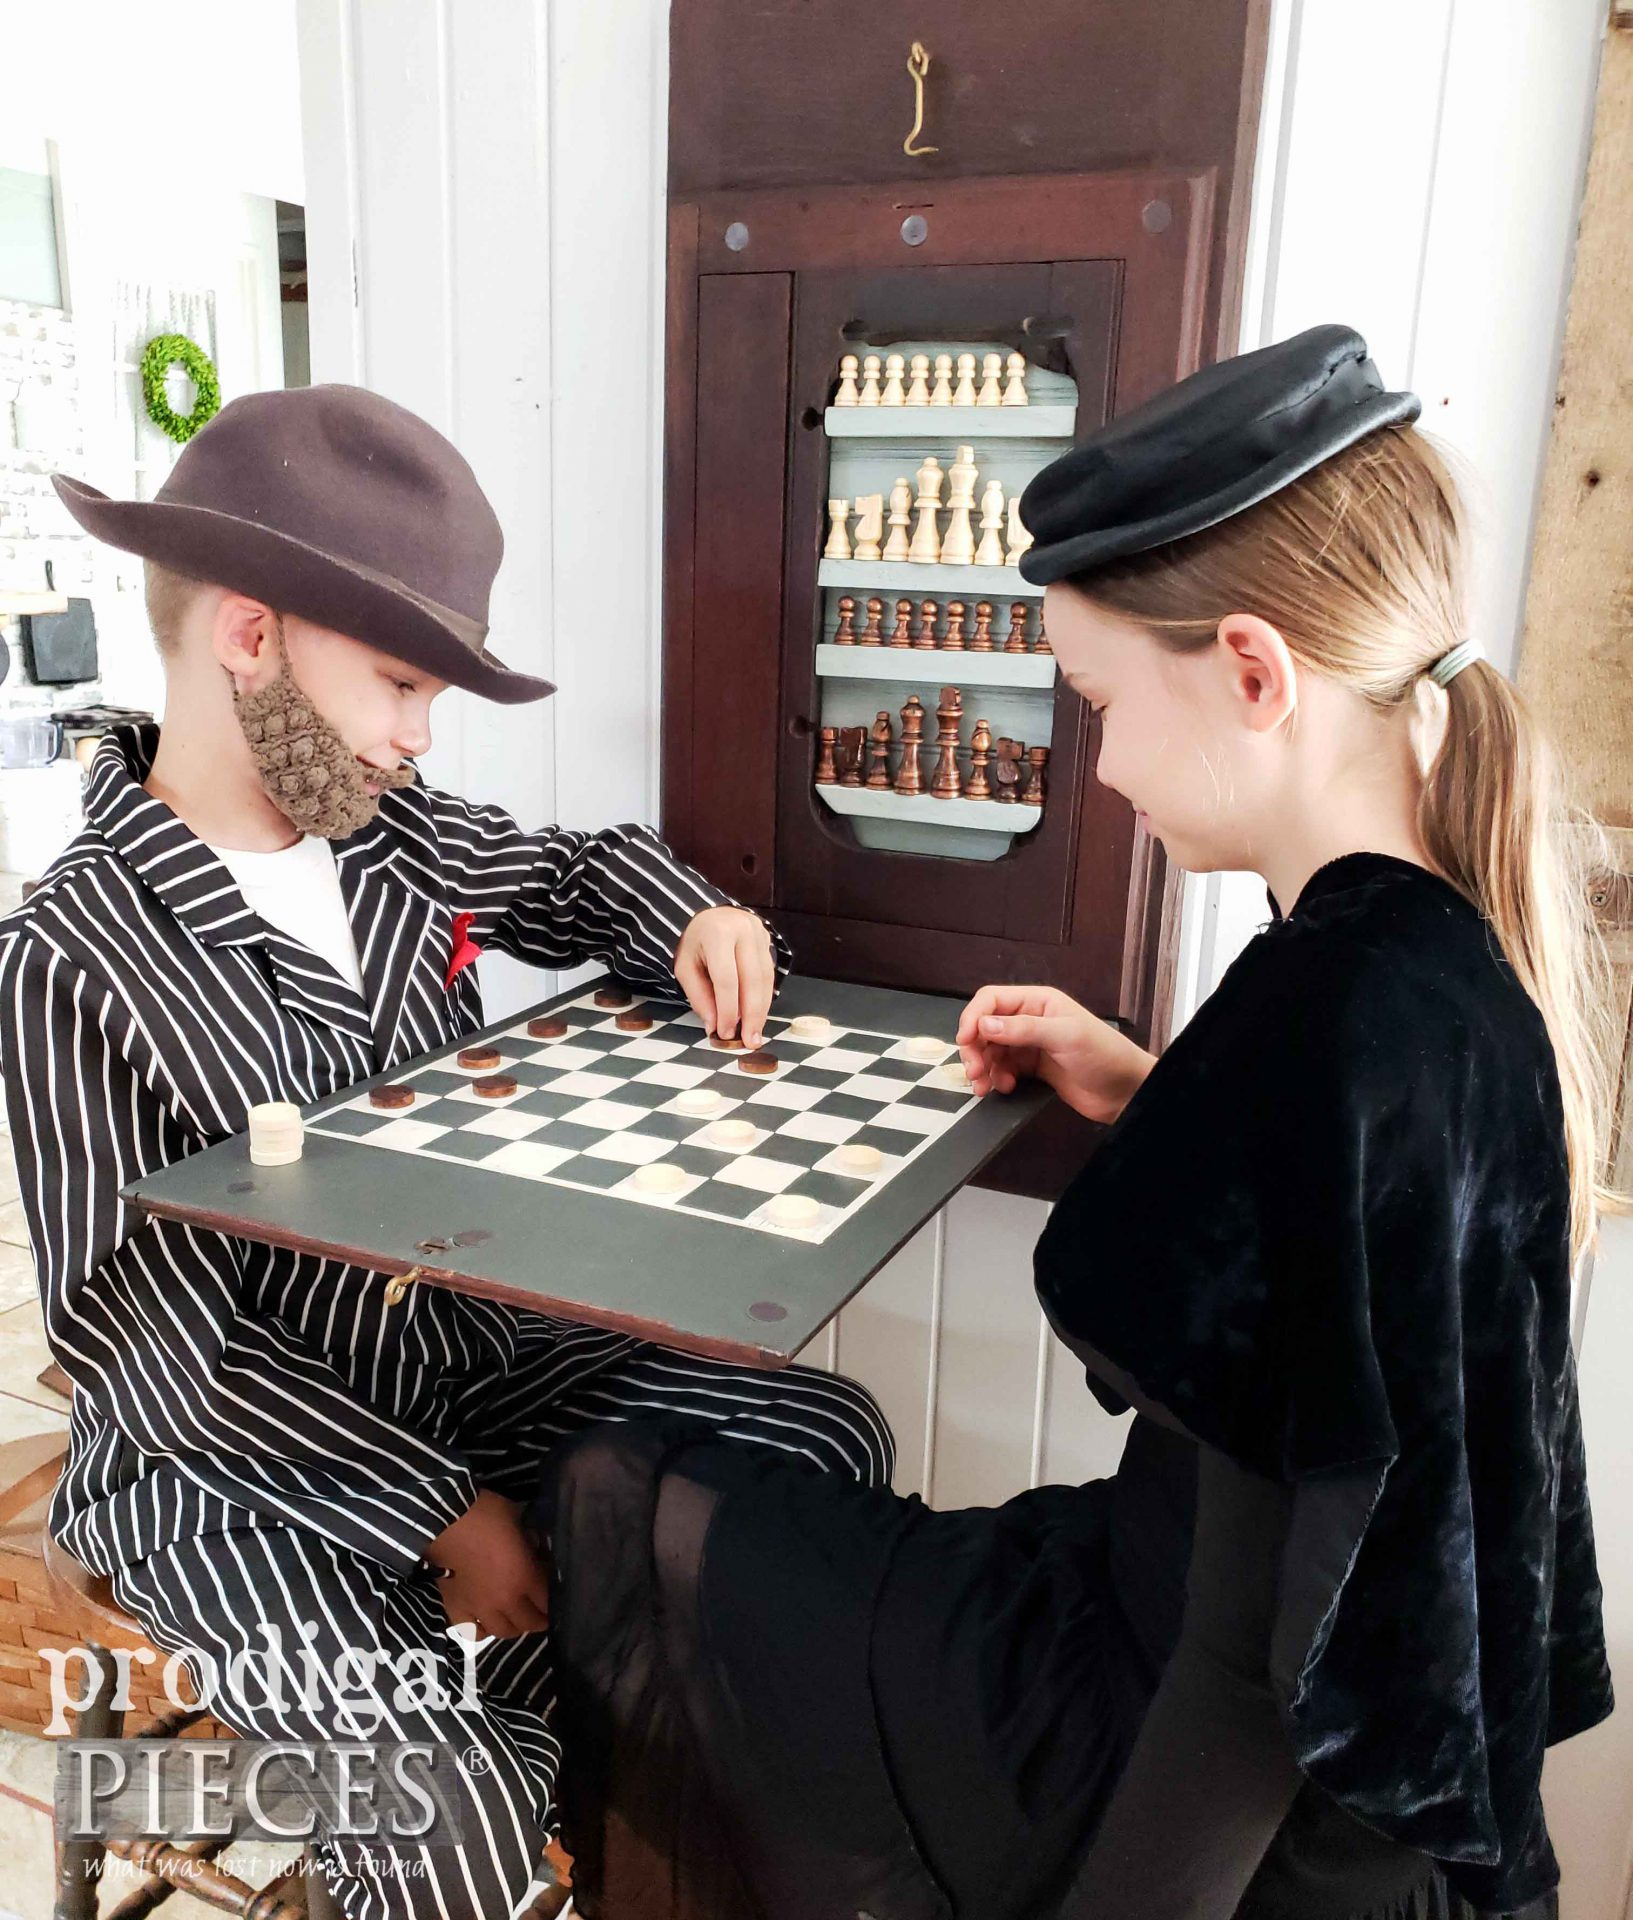 Kids Playing Checkers on Upcycled Sewing Machine Top Game Board created by Larissa of Prodigal Pieces | prodigalpieces.com #prodigalpieces #handmade #home #games #diy #homedecor #farmhouse